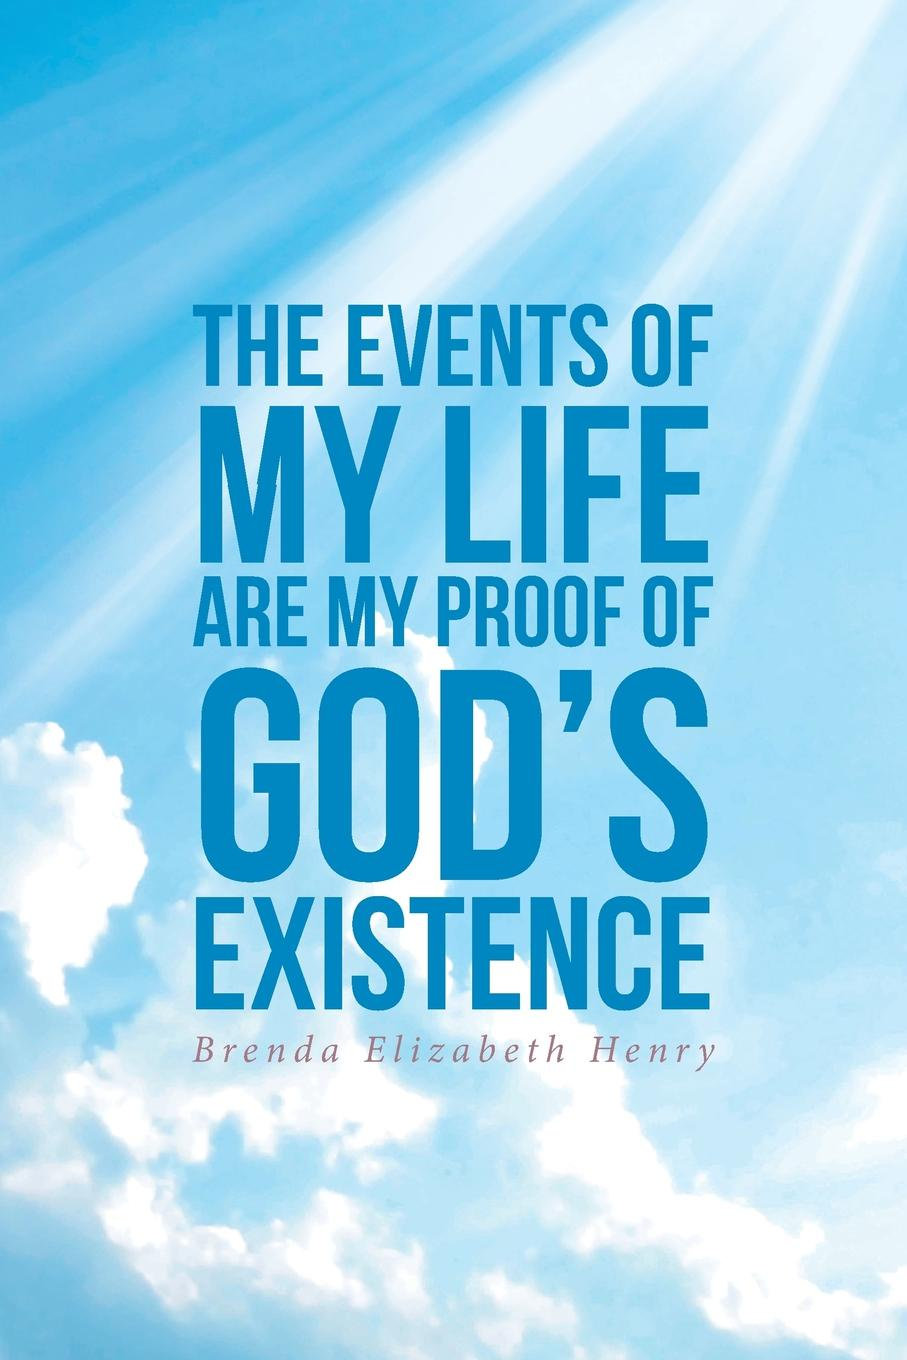 Brenda Elizabeth Henry The Events of My Life Are My Proof of God.s Existence benjamin bonetti how to change your life who am i and what should i do with my life isbn 9780857084613